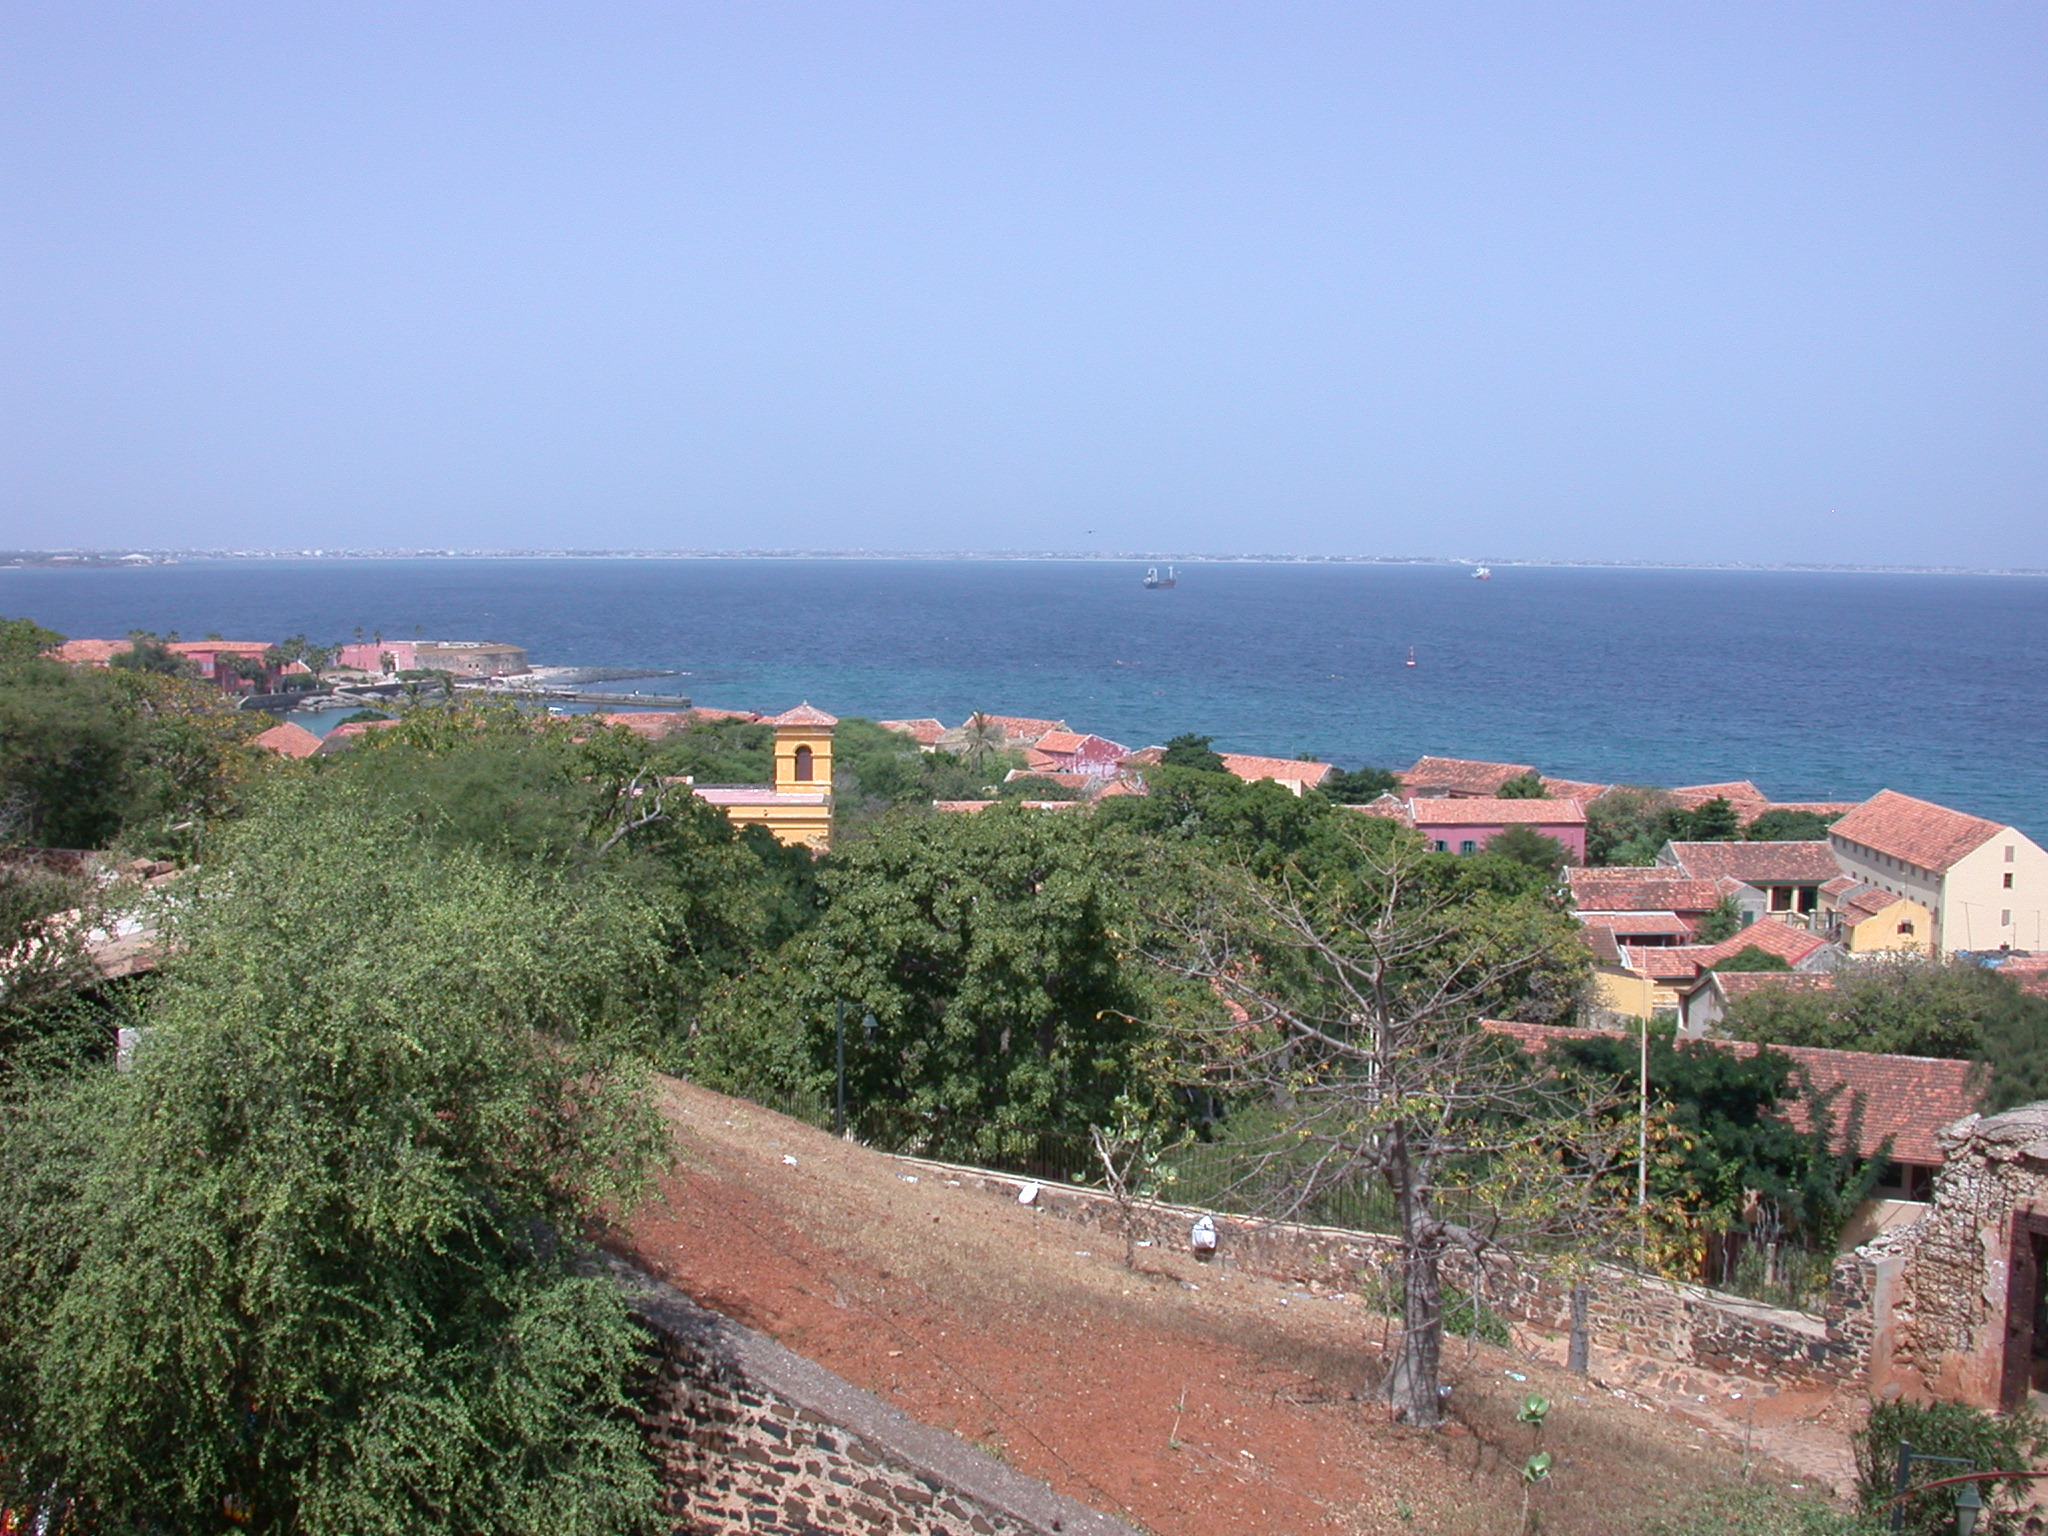 View From Peak Over Town on Ile de Goree, Dakar, Senegal